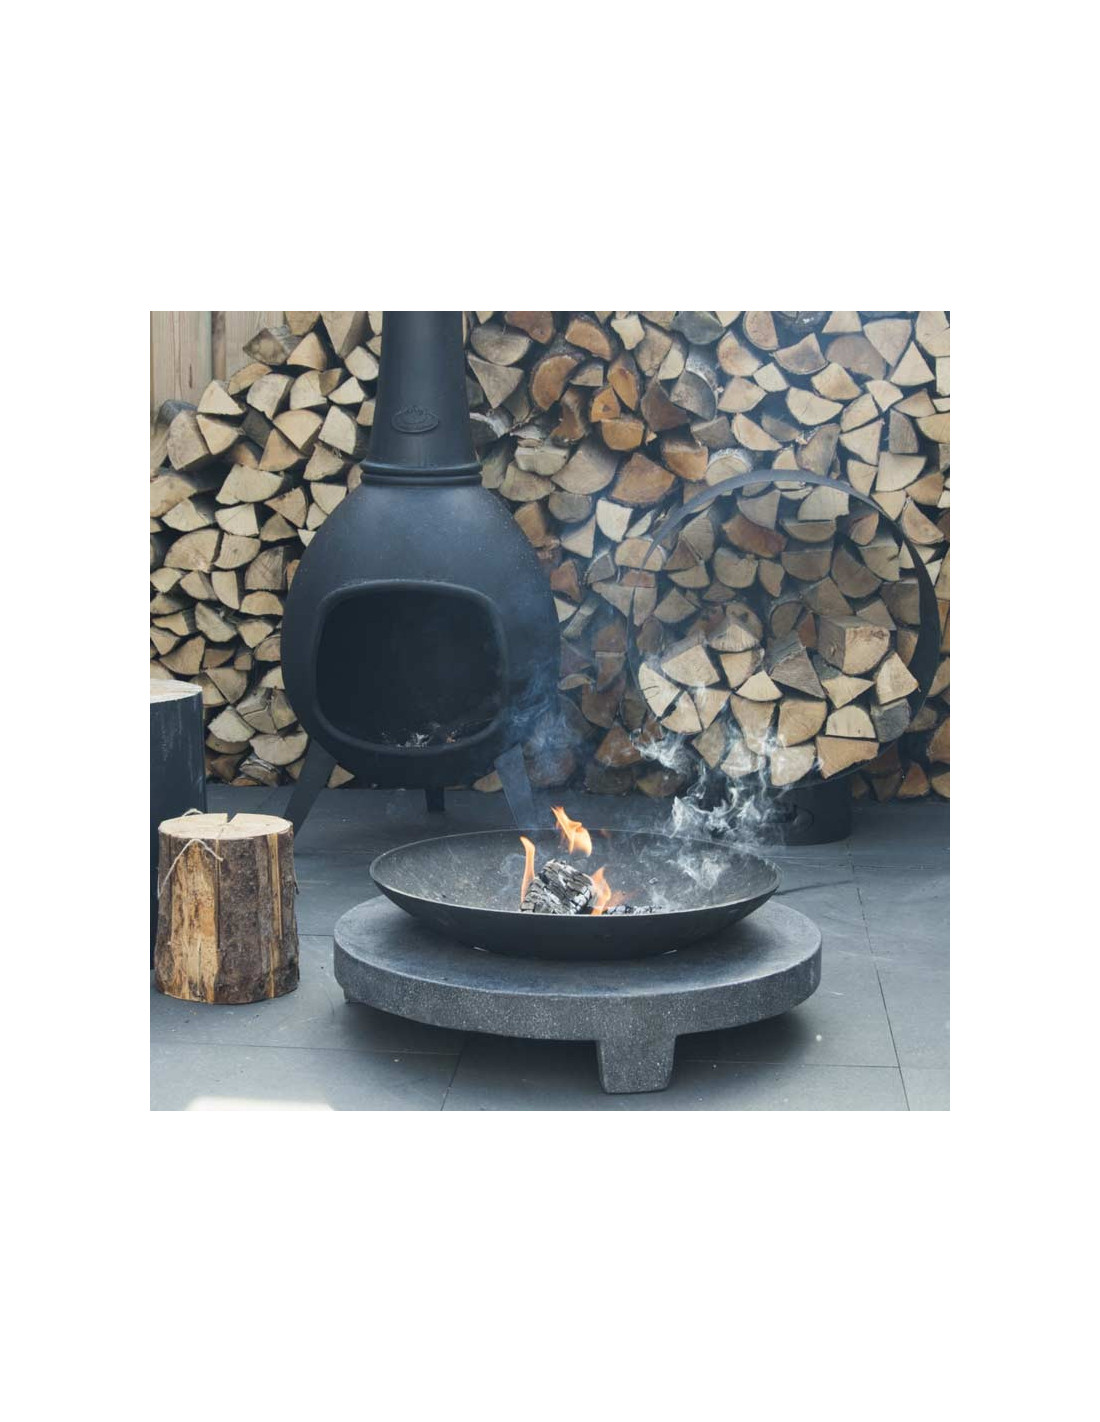 Https Www Esprit Barbecue Fr Brasero Fonte 265 Cheminee Mexicaine 150 Cm Brasero Exterieur 8714982022074 Html